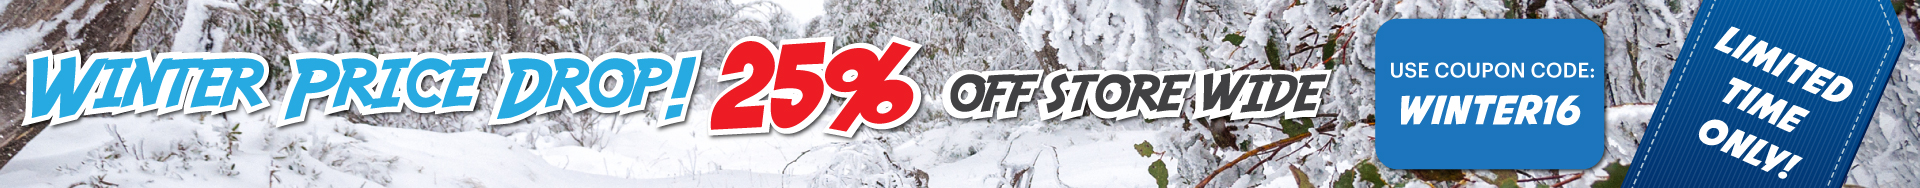 Winter Price Drop 25% Off Store Wide - Limited Time Only - Stingray Australia